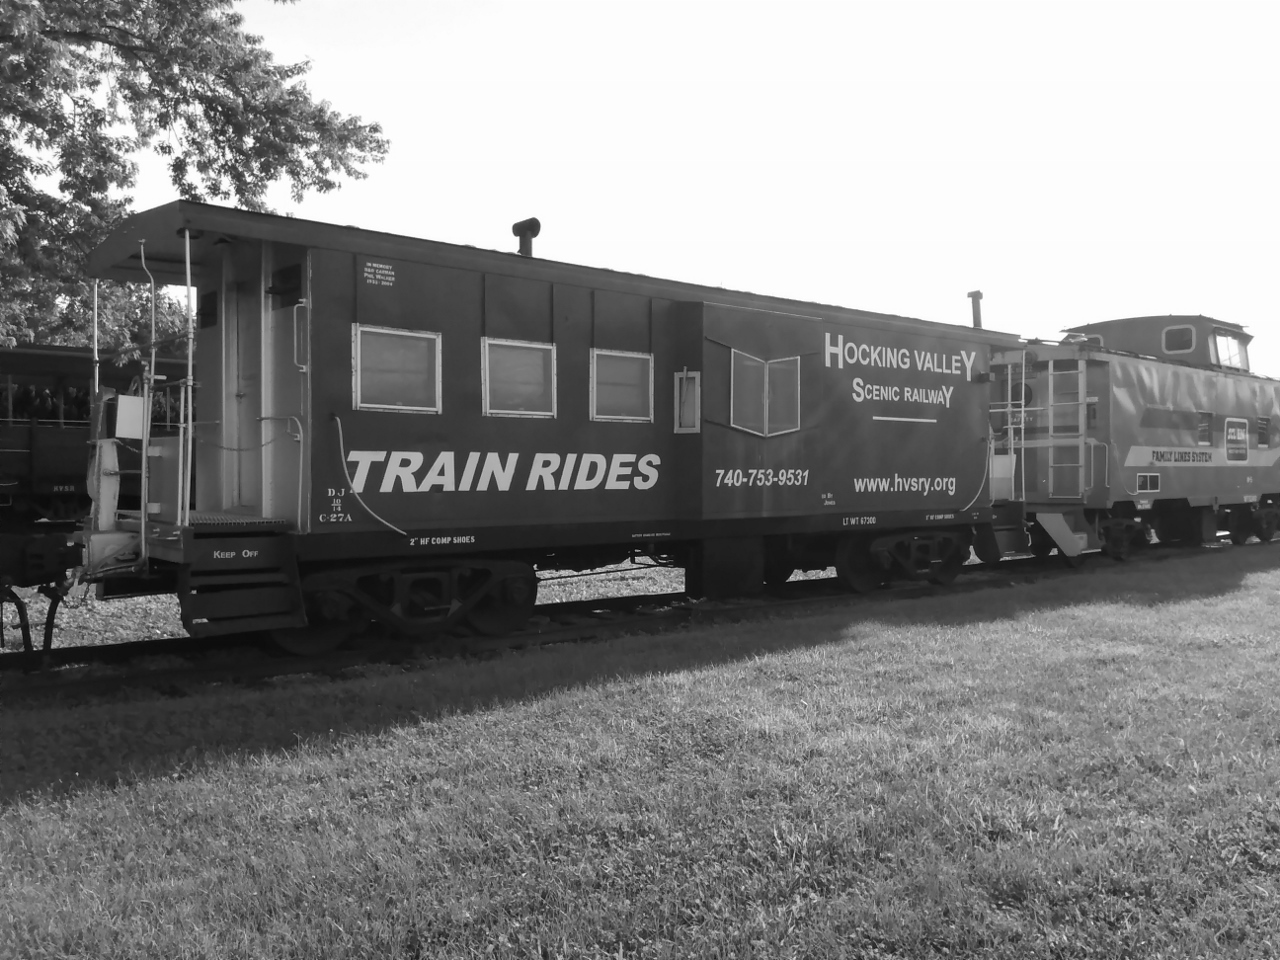 Hocking Valley Scenic Railway - BW 6-15-2018 6-40-34 AM